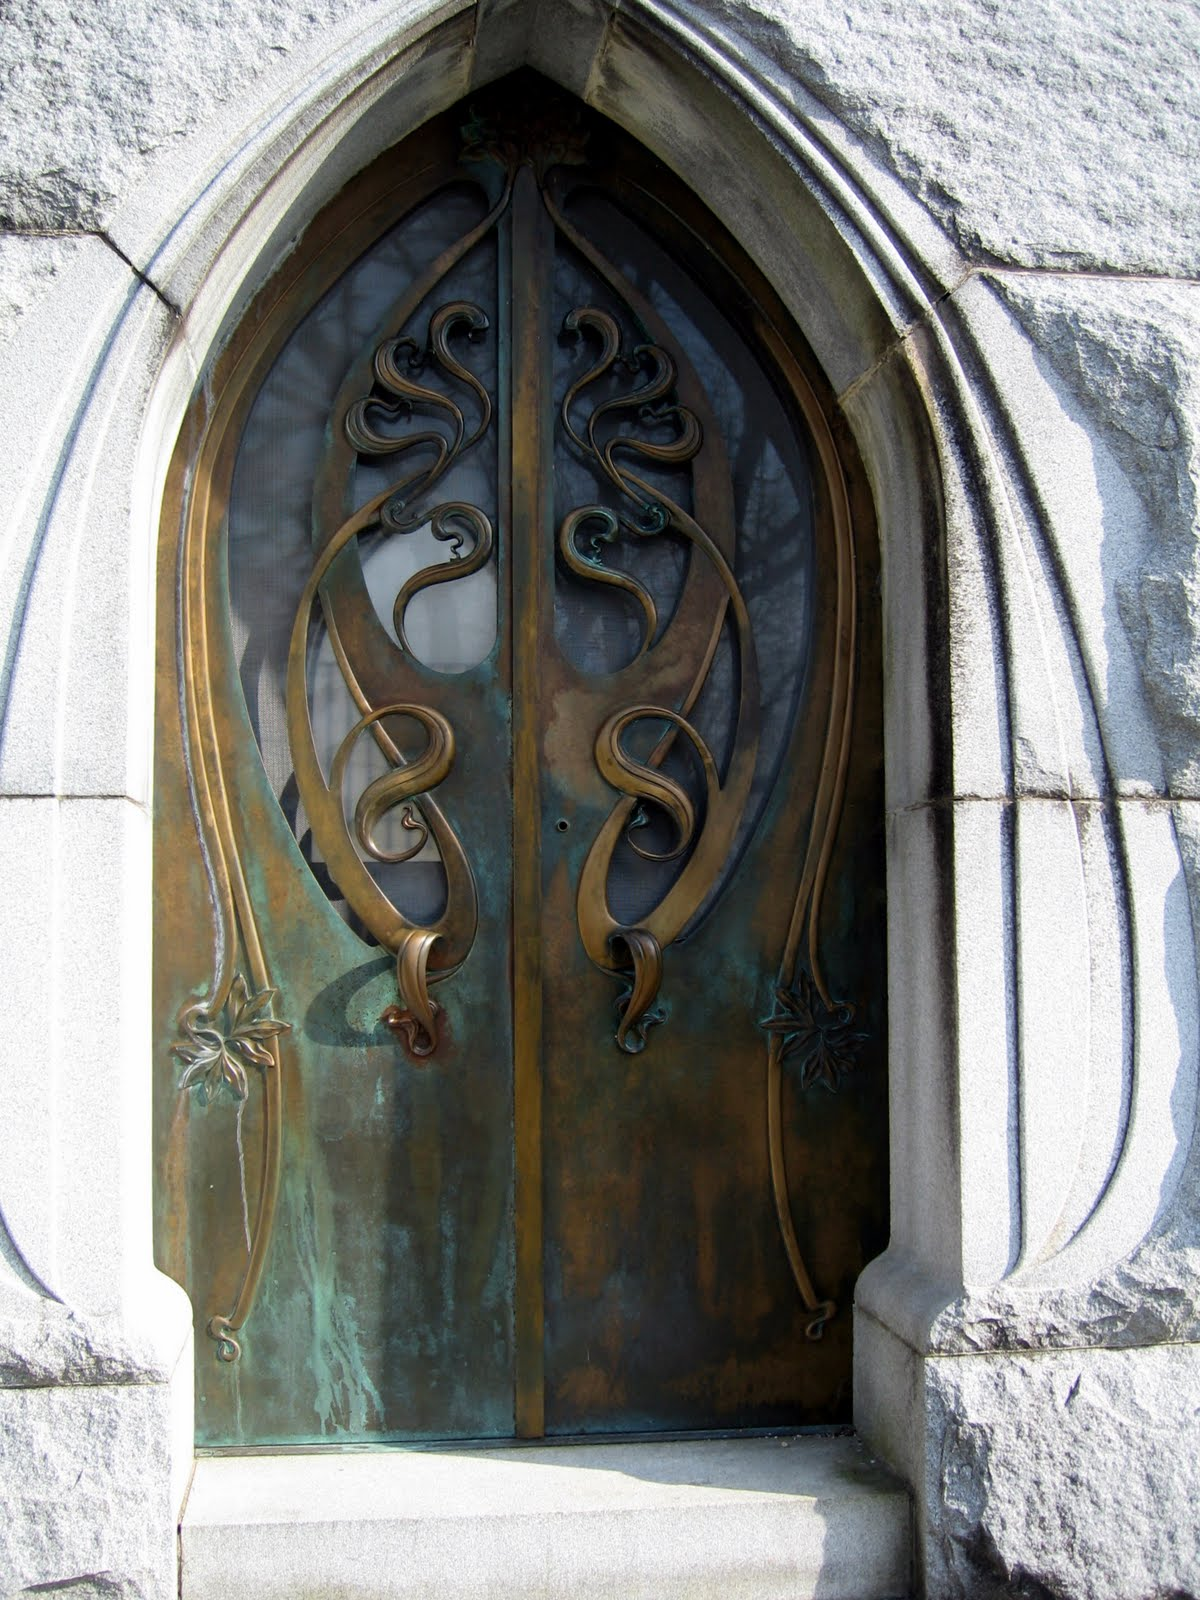 Exhibit A - mausoleum doors from Forest Hill Cemetery in Utica, NY